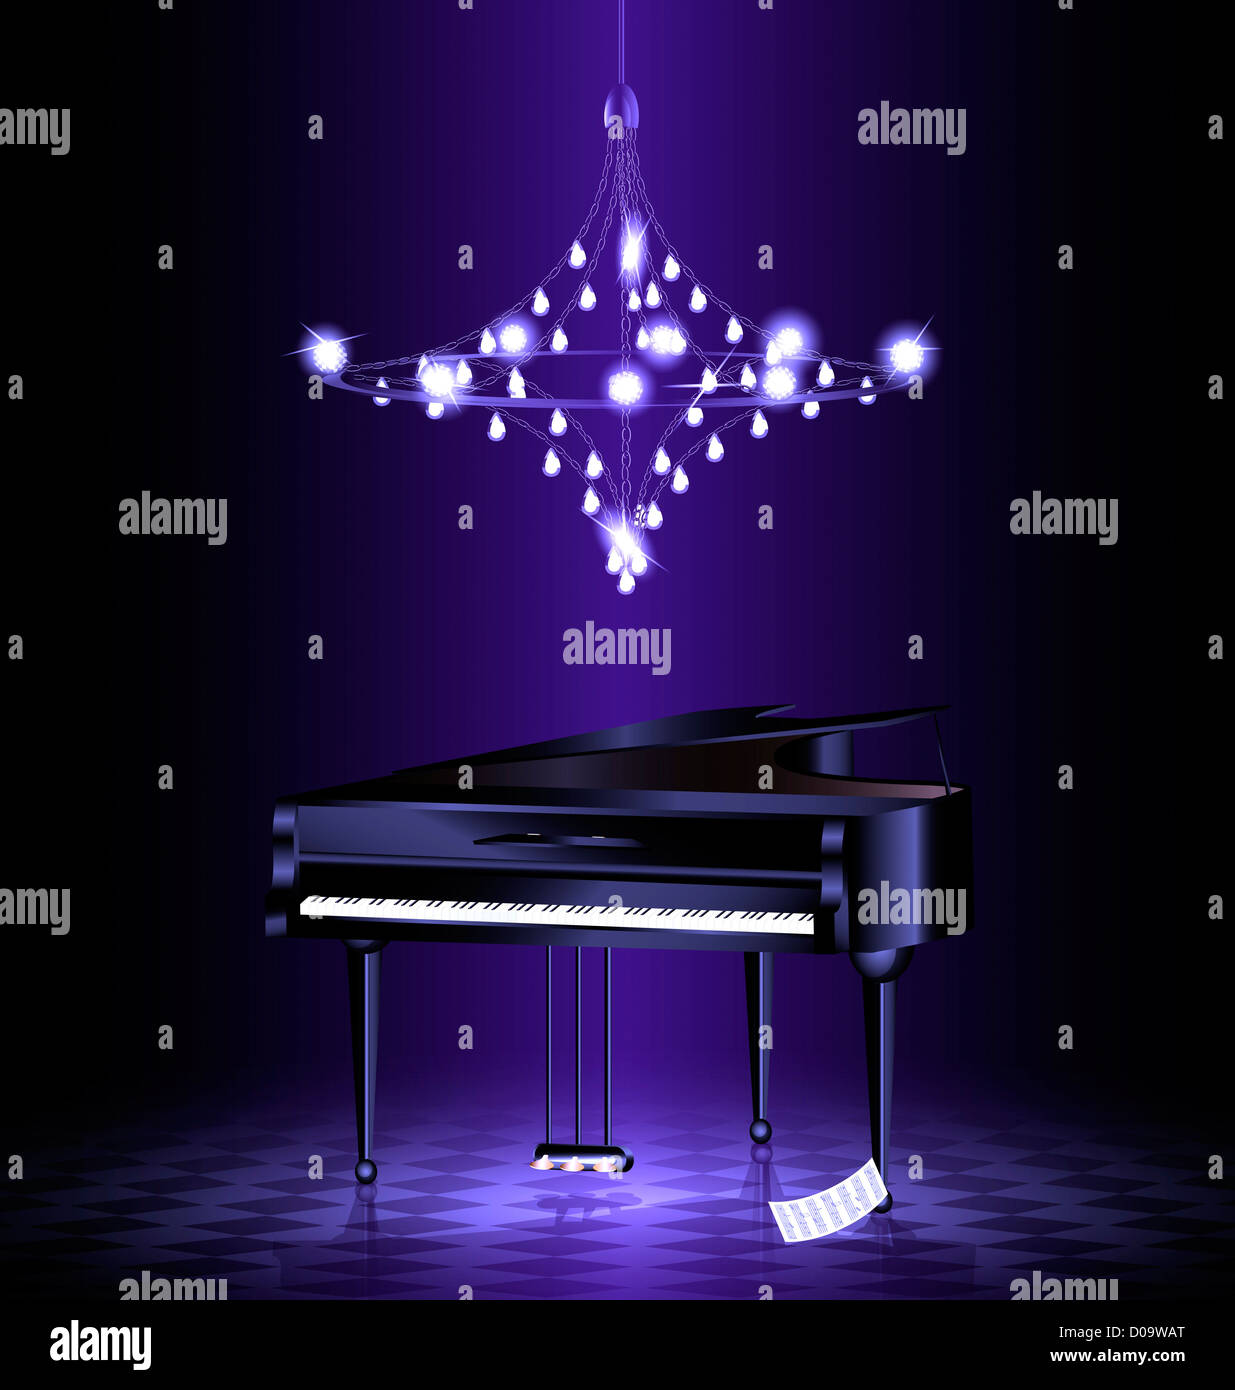 in dark room with crystal luster is black grand piano - Stock Image